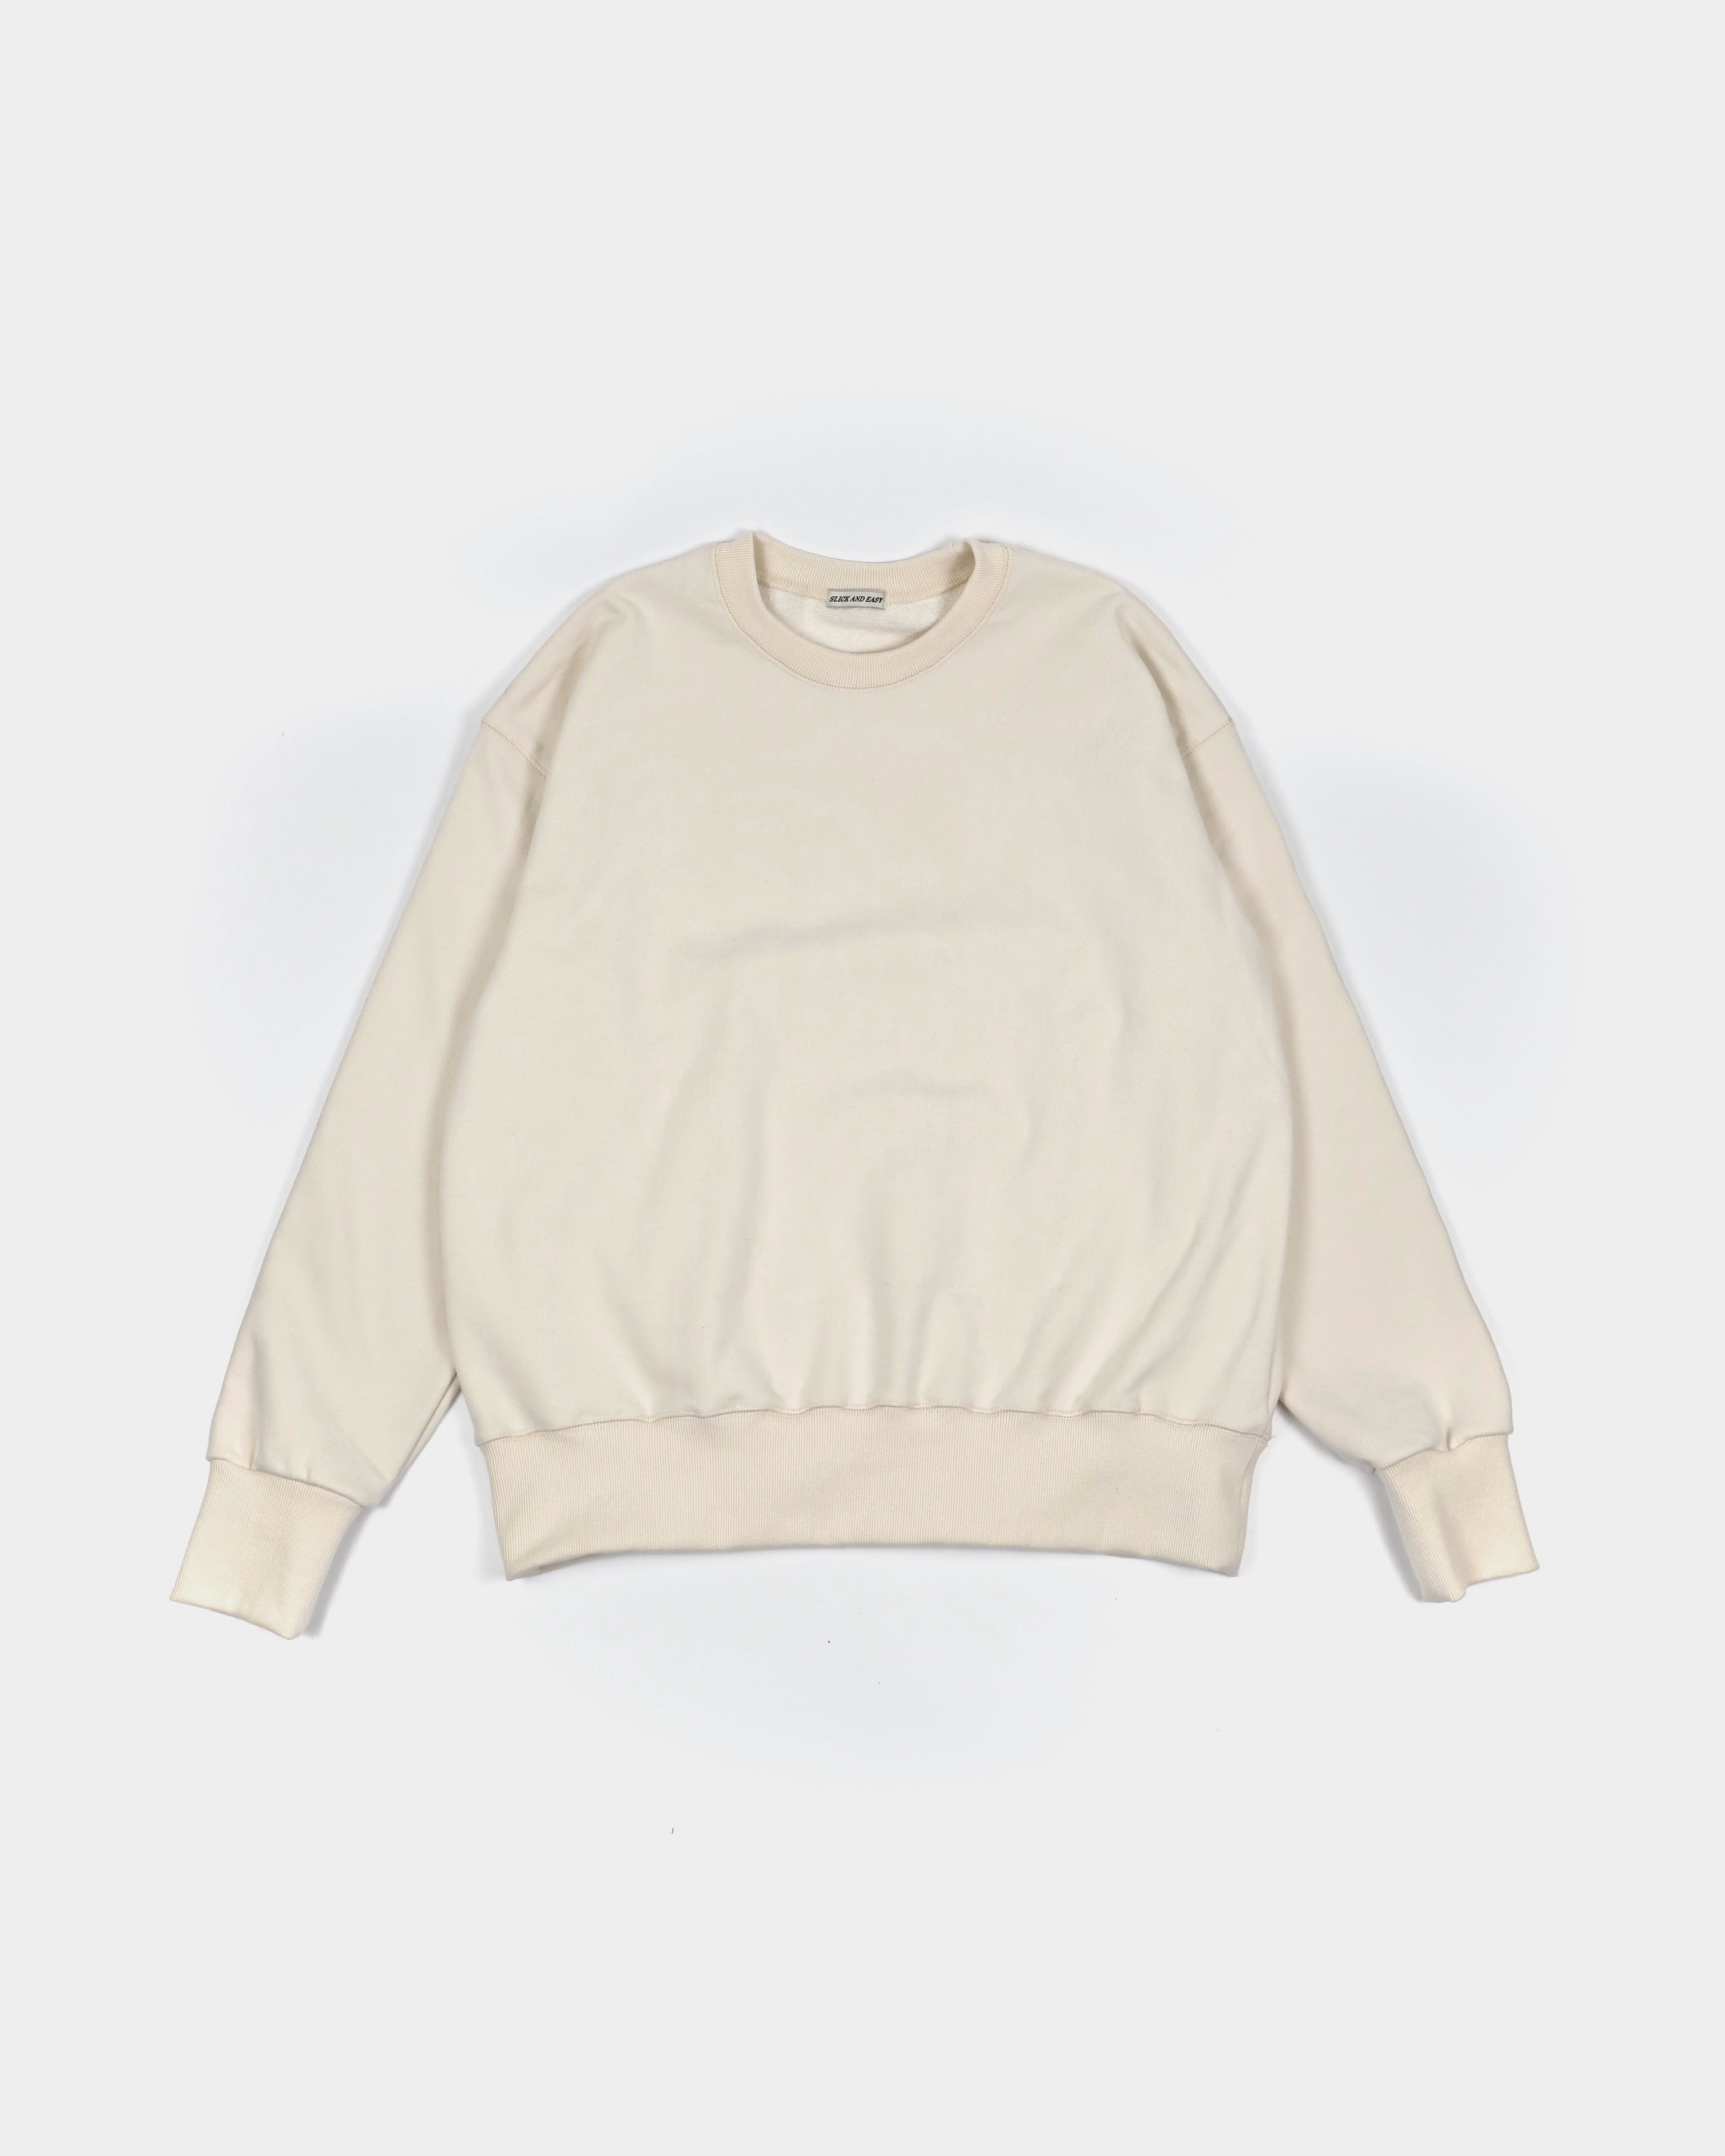 Tonki Sweatshirt Cream